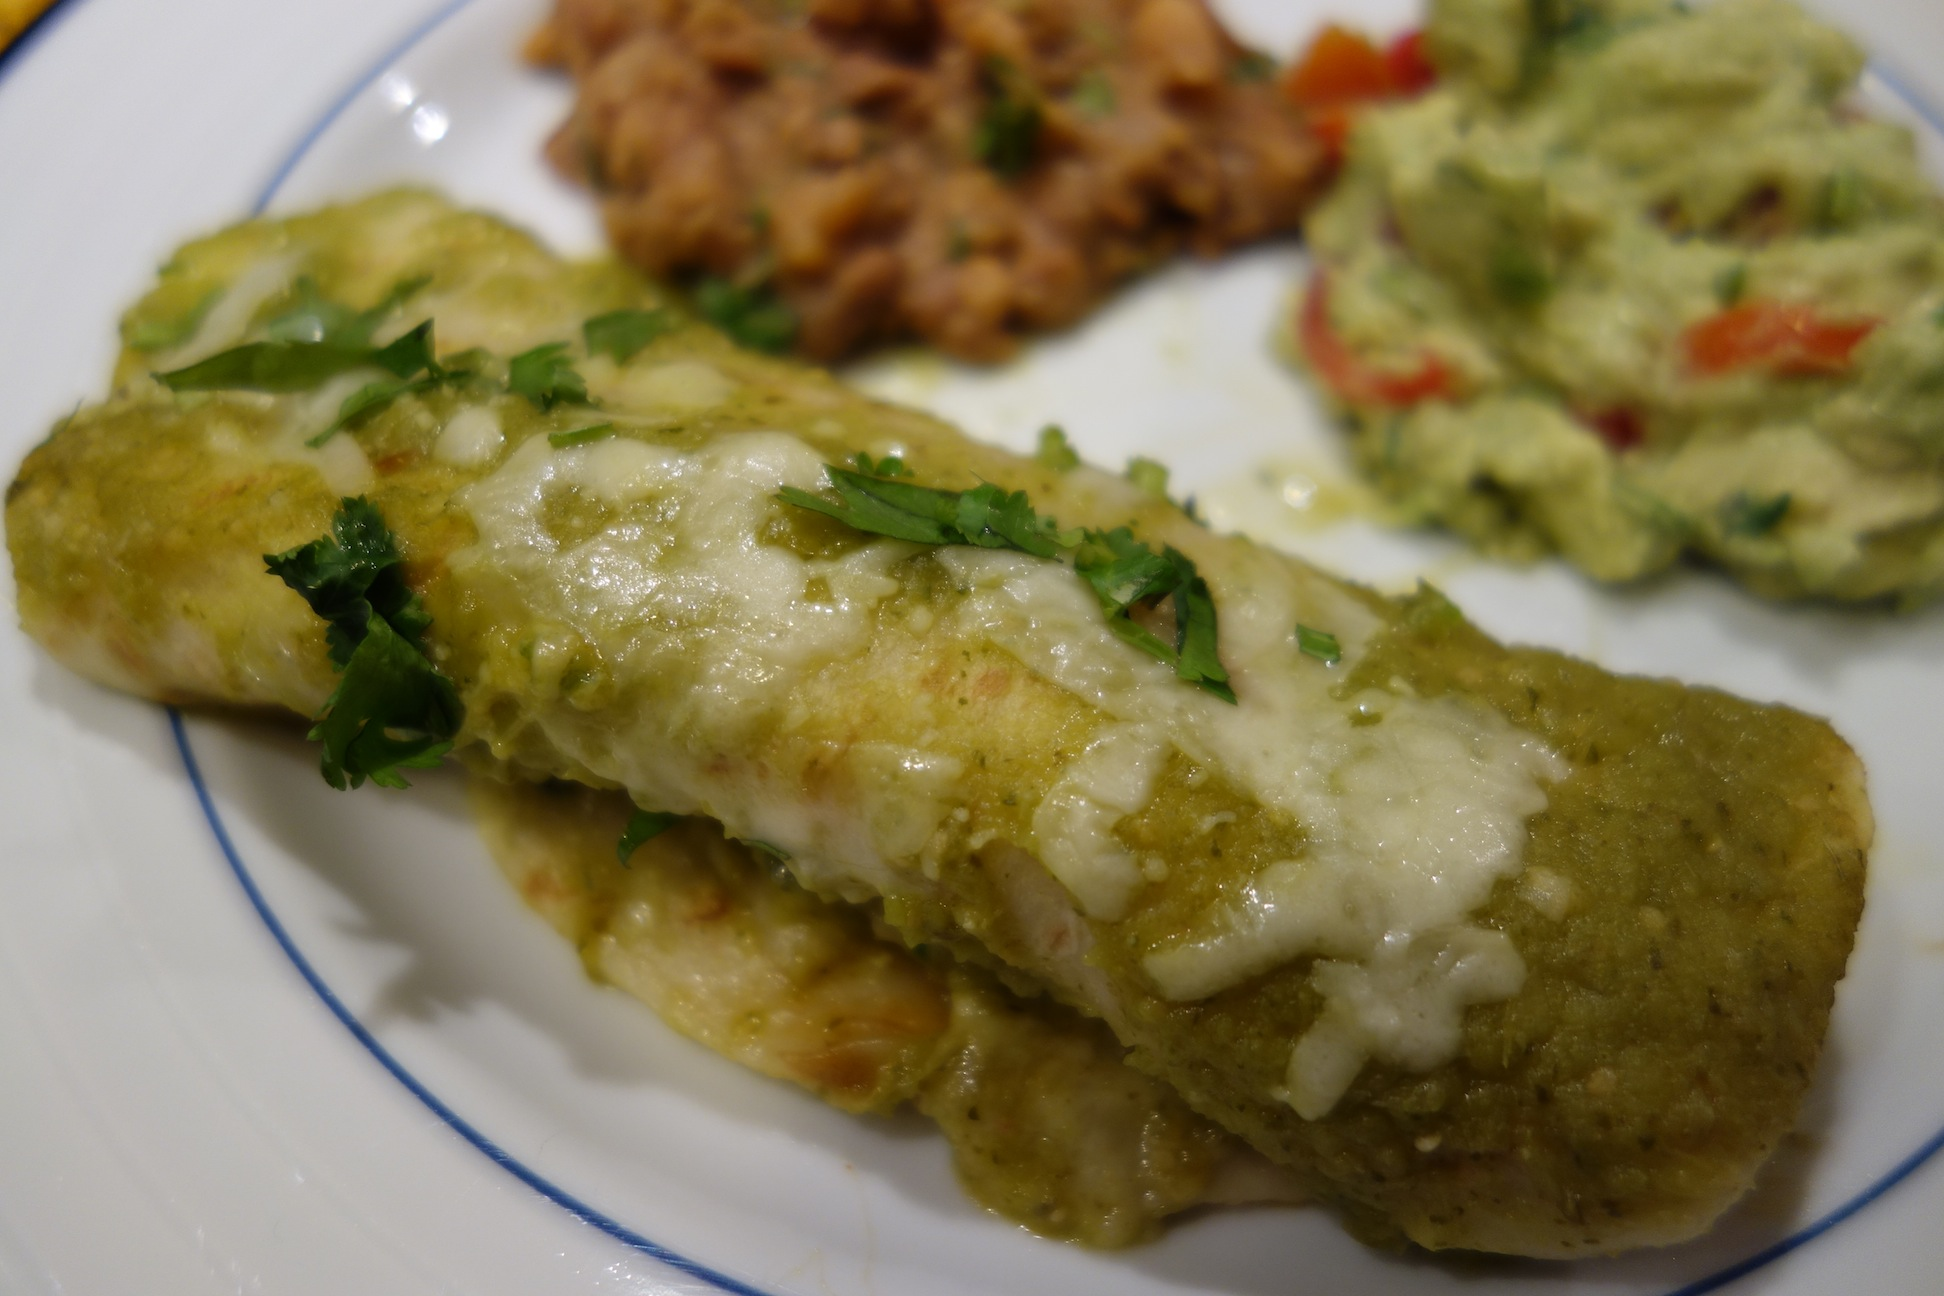 enchiladas vegetarian enchiladas chicken enchiladas shrimp enchiladas ...